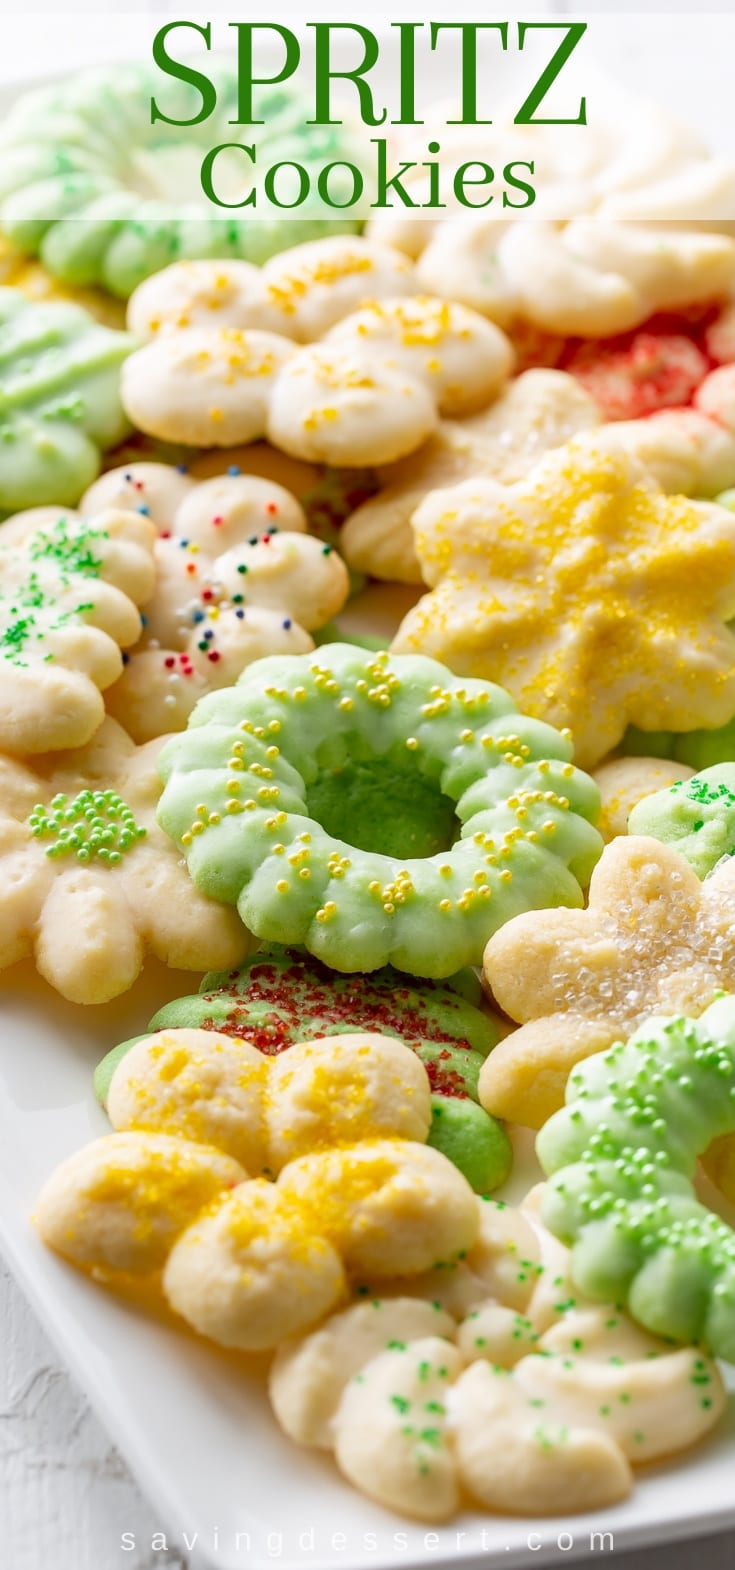 A platter of colorful Spritz Cookies in various designs